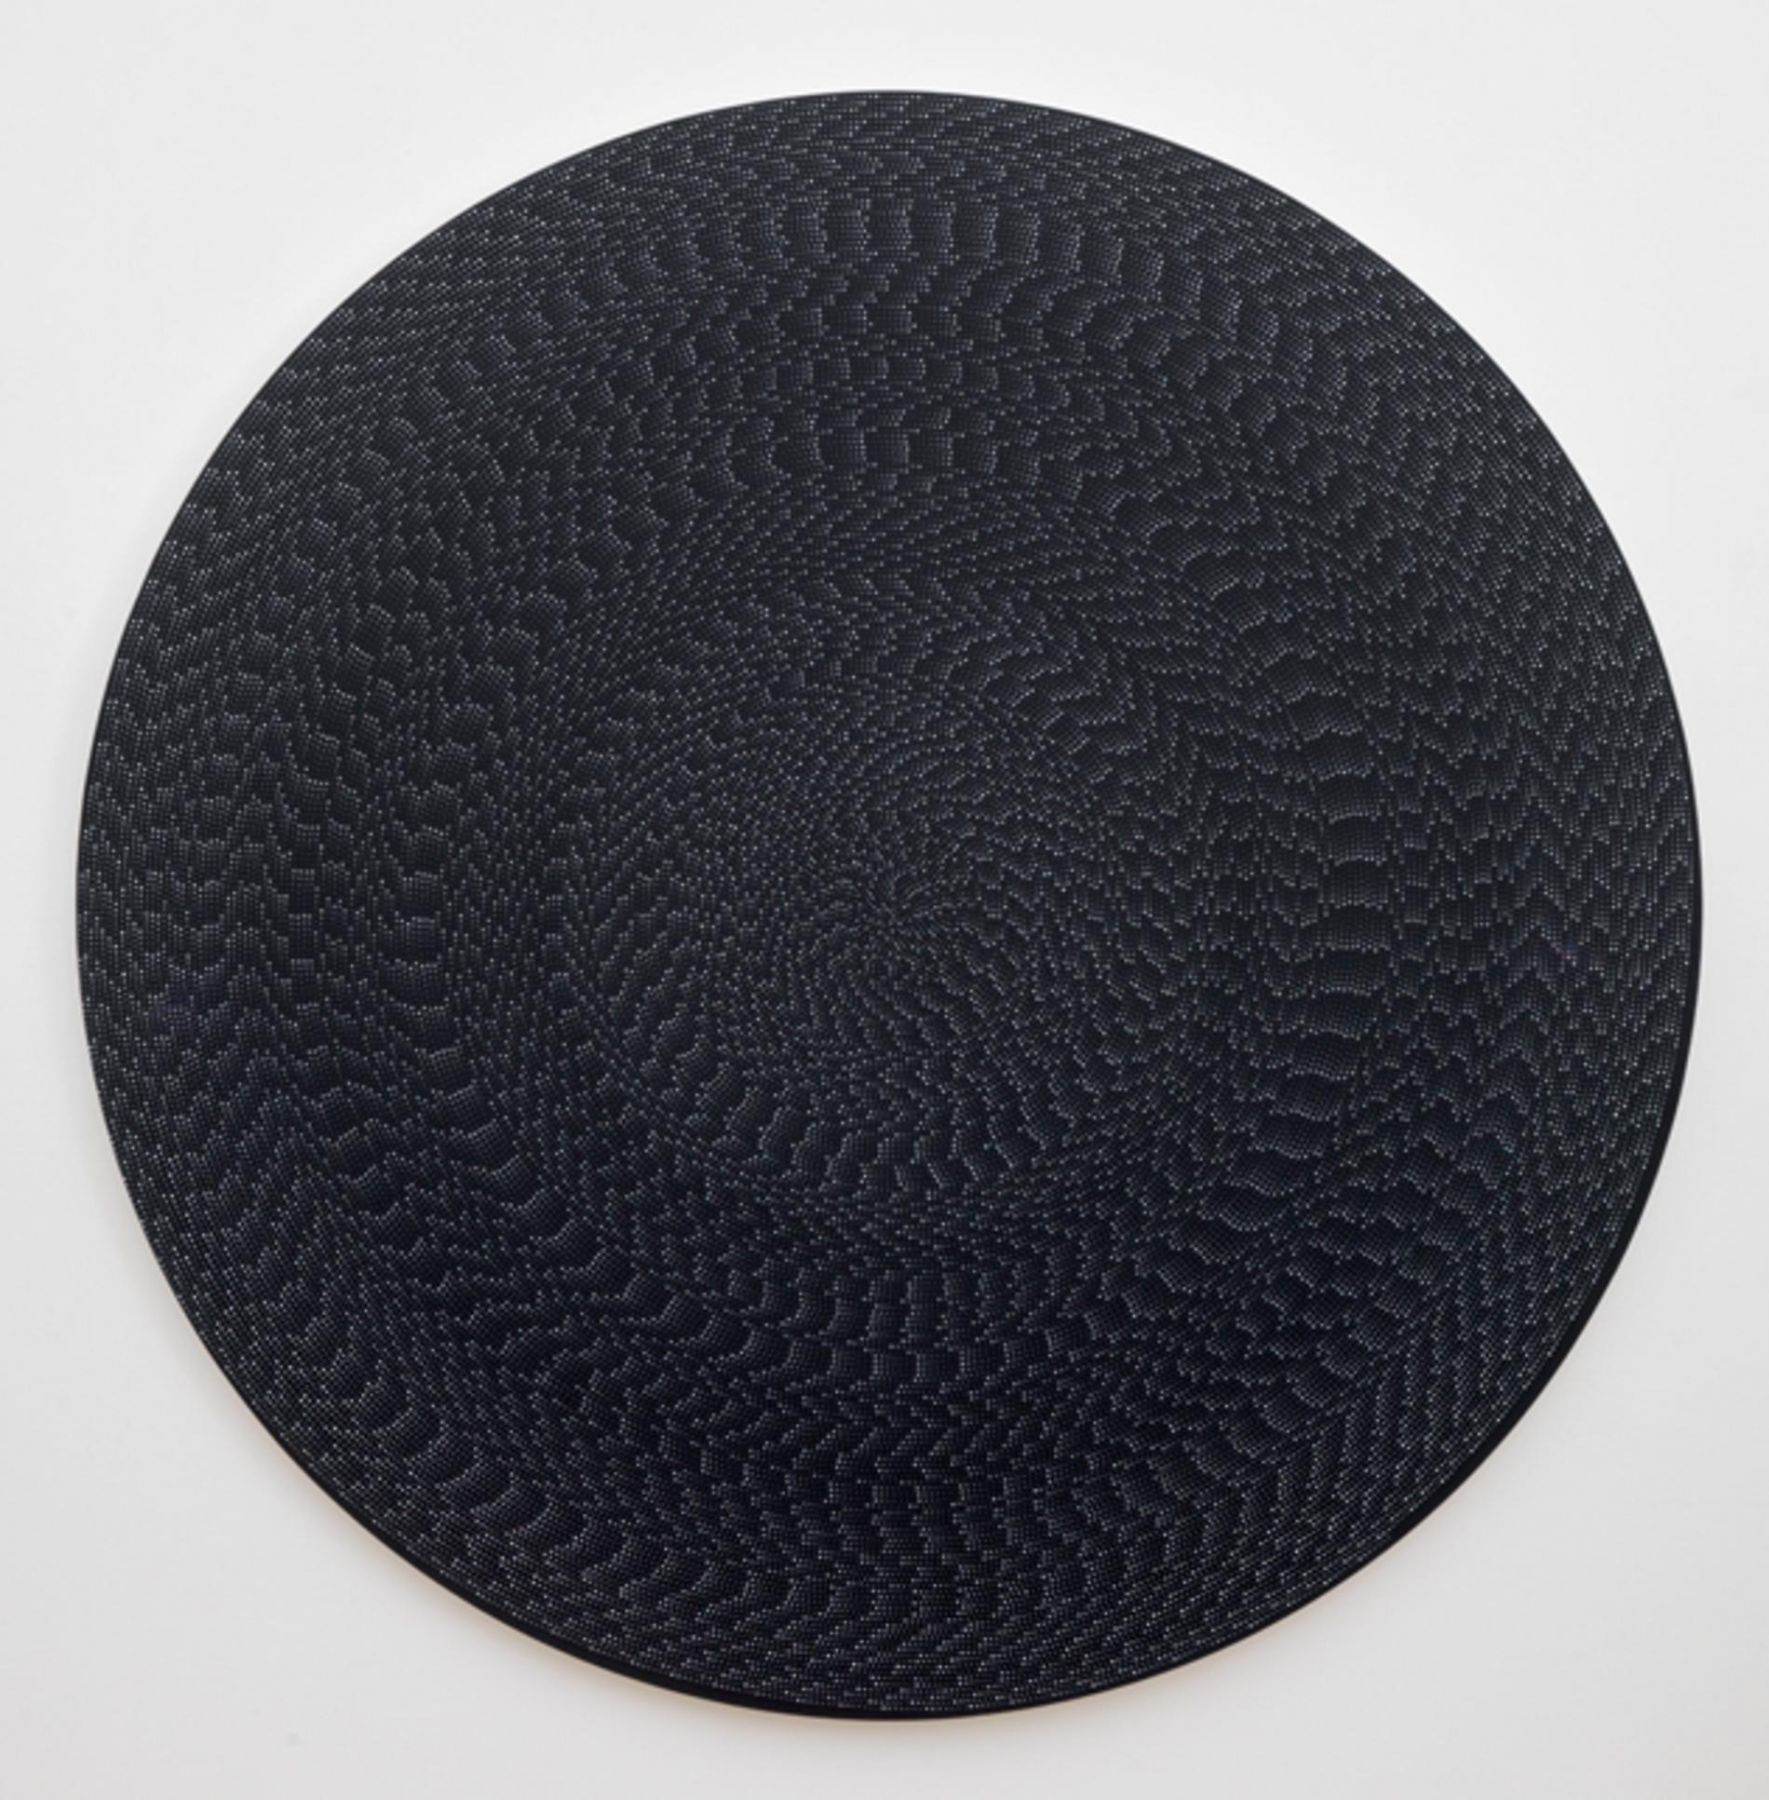 , MICHELLE GRABNER, Untitled, 2013 Flashe on canvas Diameter: 80 in.